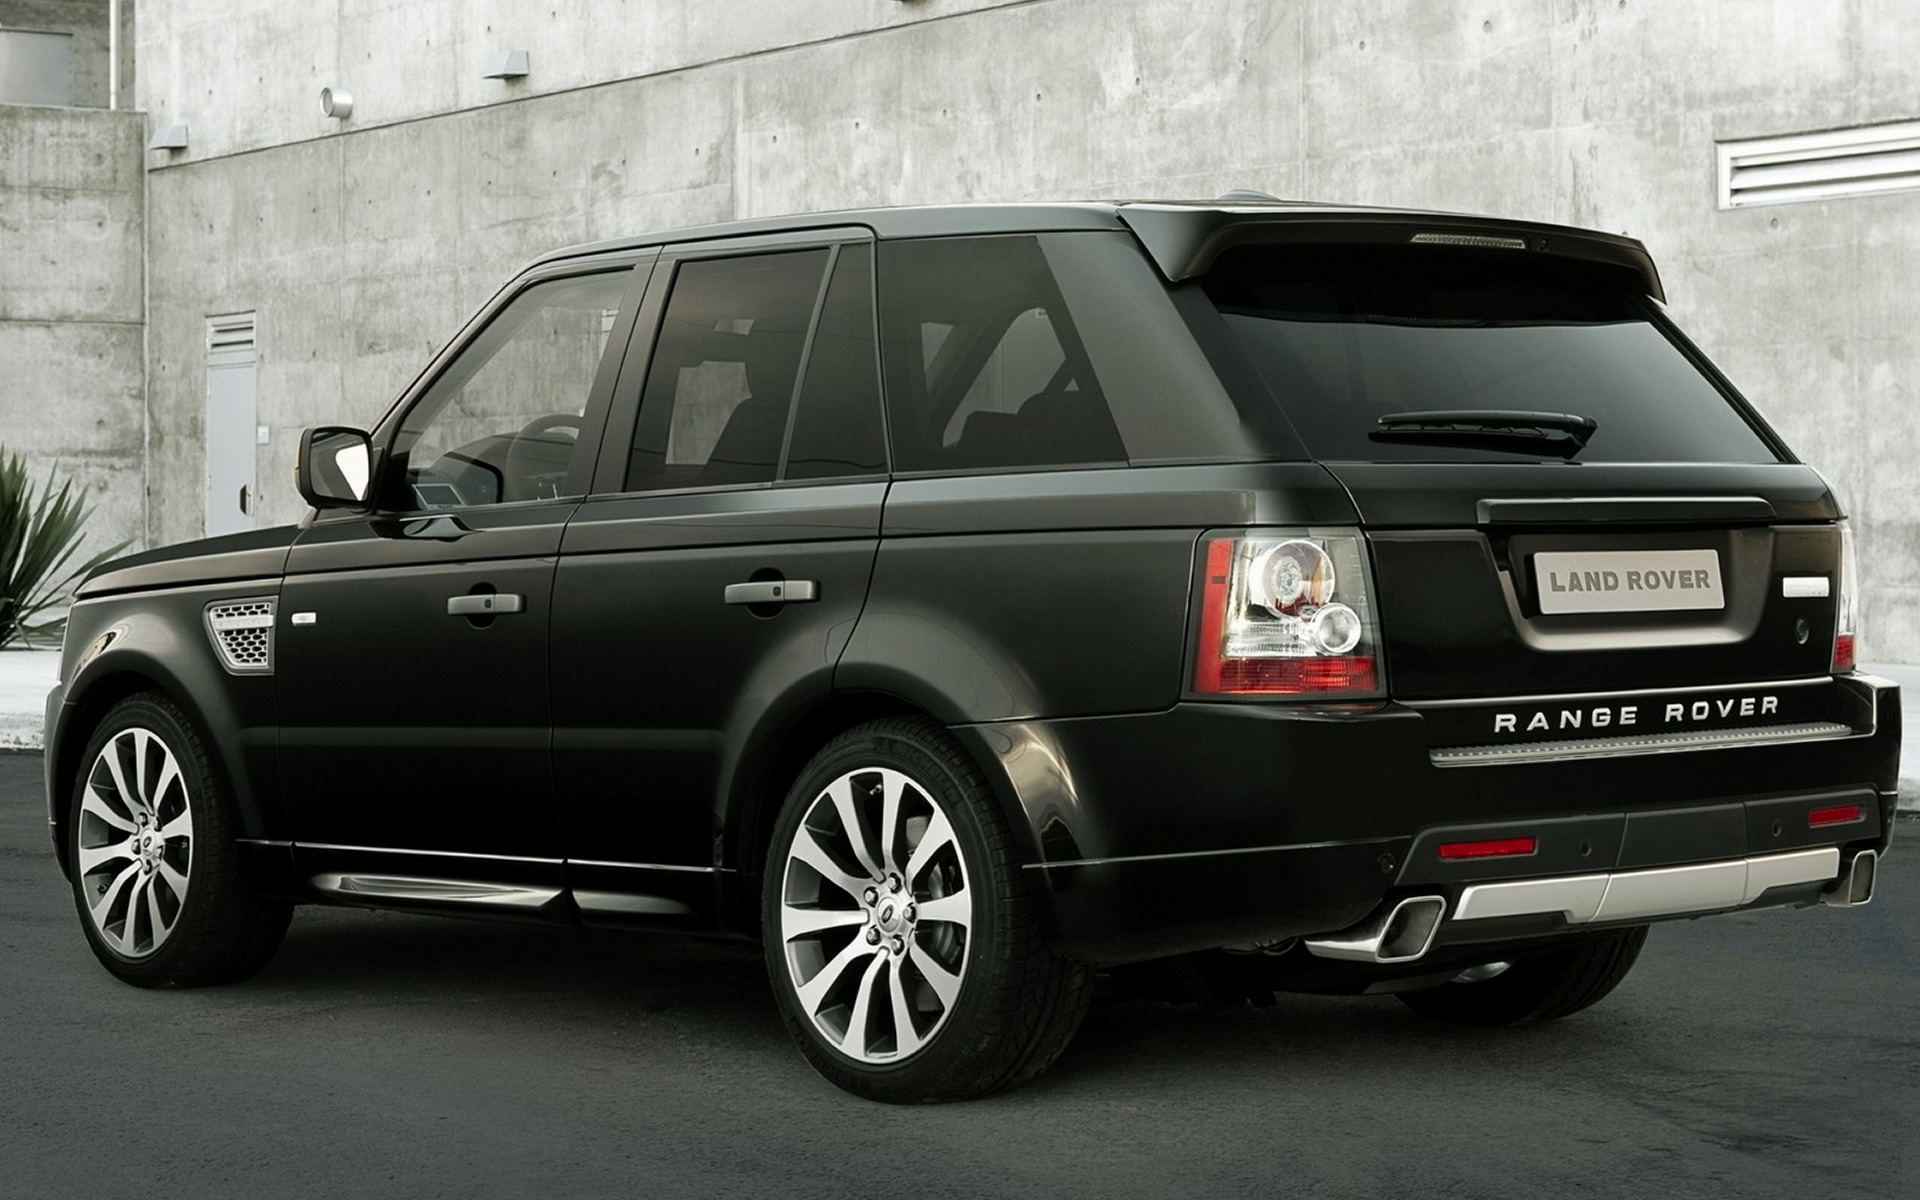 2009 range rover sport autobiography wallpapers and hd images car pixel. Black Bedroom Furniture Sets. Home Design Ideas